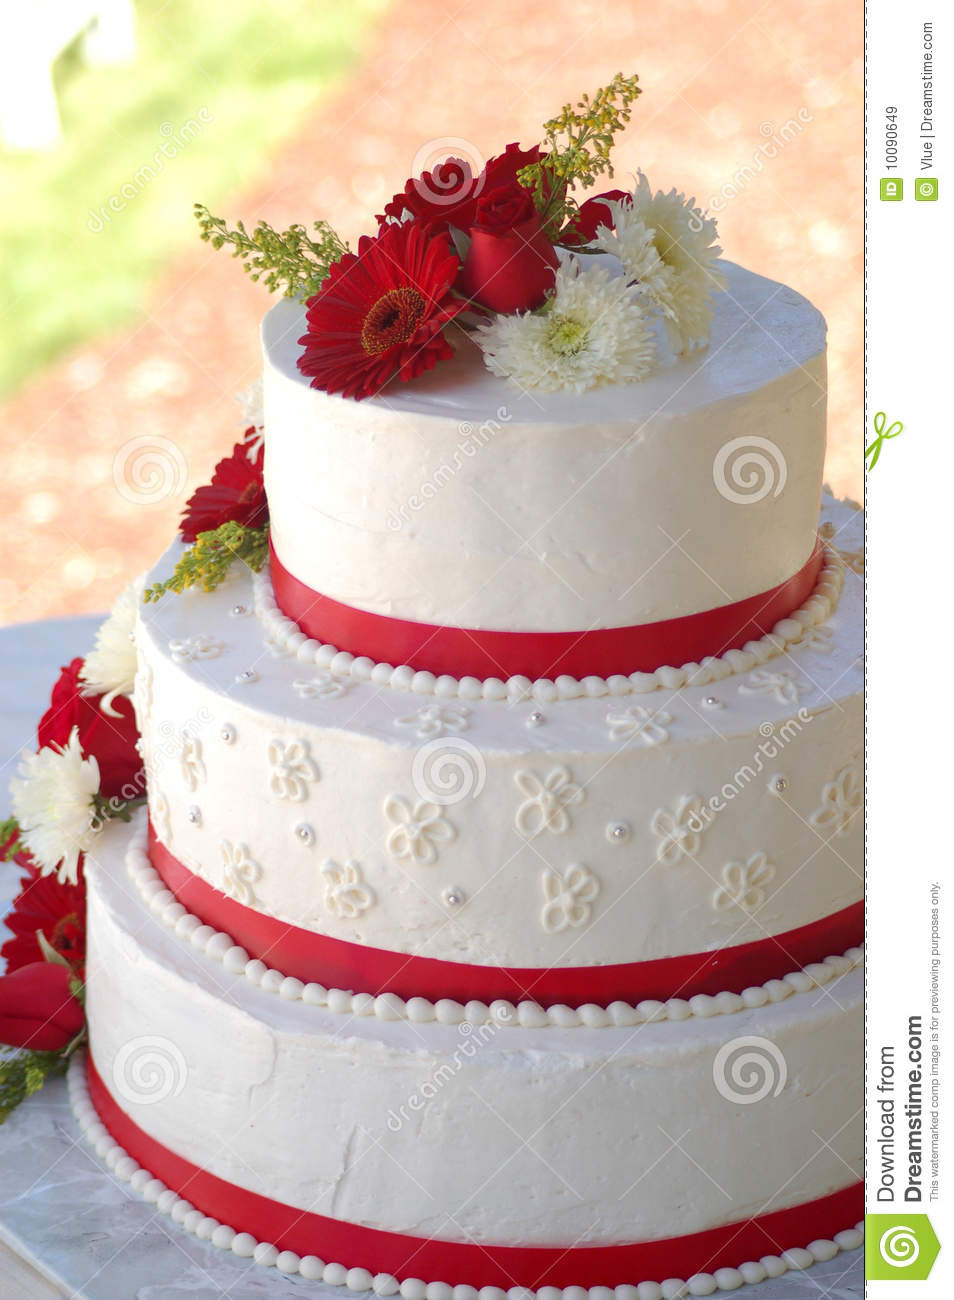 Wedding Cake With Red Stripes And Flowers Stock Image Image Of